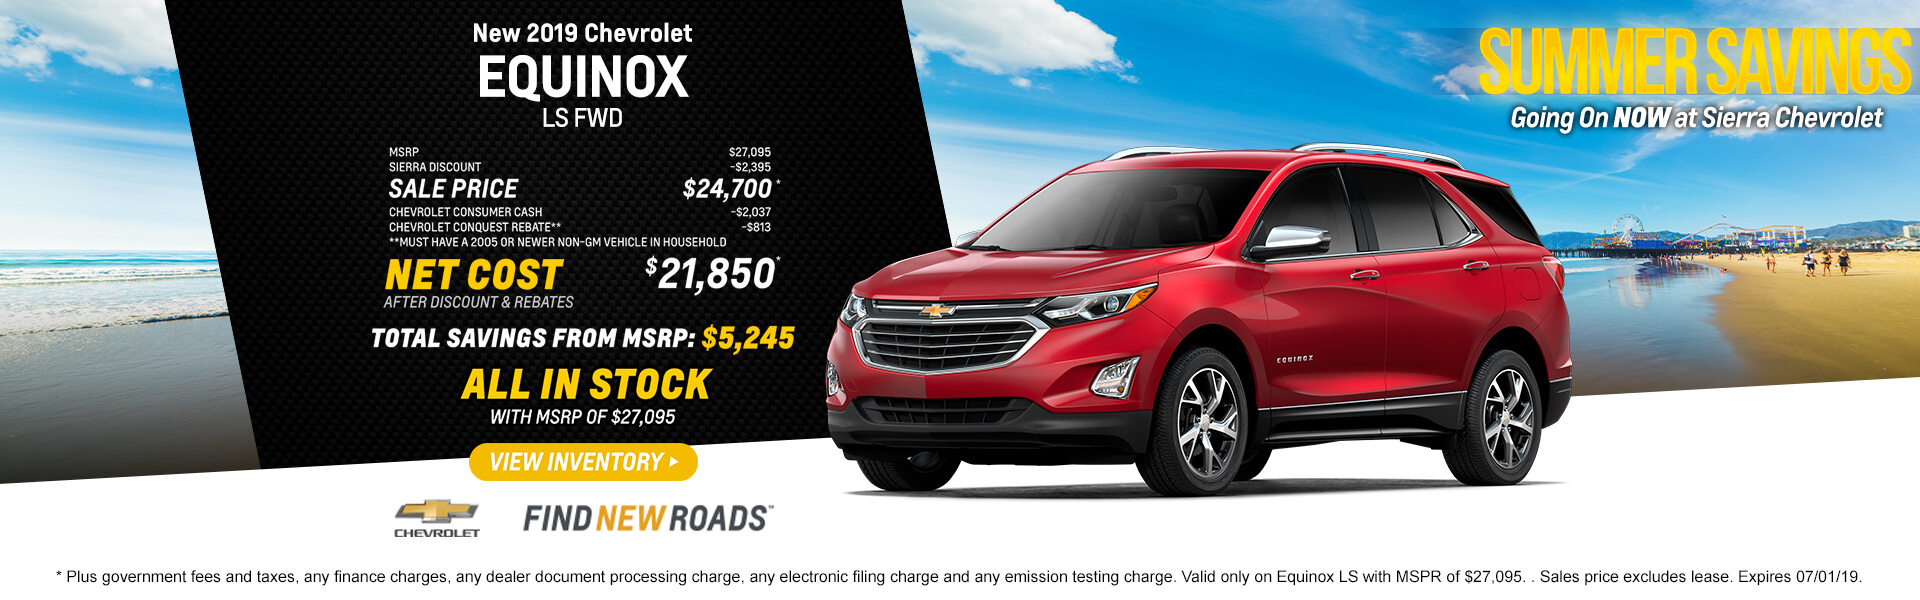 2019 Chevrolet Equinox LS FWD  MSRP $27,095 Sierra Discount -$2395 SALE PRICE $24,700* Chevrolet Consumer Cash -$2037 Chevrolet Conquest Rebate** -$813 **Must have a 2005 or newer non-GM vehicle in household  Net Cost After Discount & Rebates $21,850*  Total Savings from MSRP $5,245  ALL IN STOCK with MSPR of $27,095  * Plus government fees and taxes, any finance charges, any dealer document processing charge, any electronic filing charge and any emission testing charge. Valid only on Equinox LS with MSPR of $27,095. . Sales price excludes lease. Expires 07/01/19.